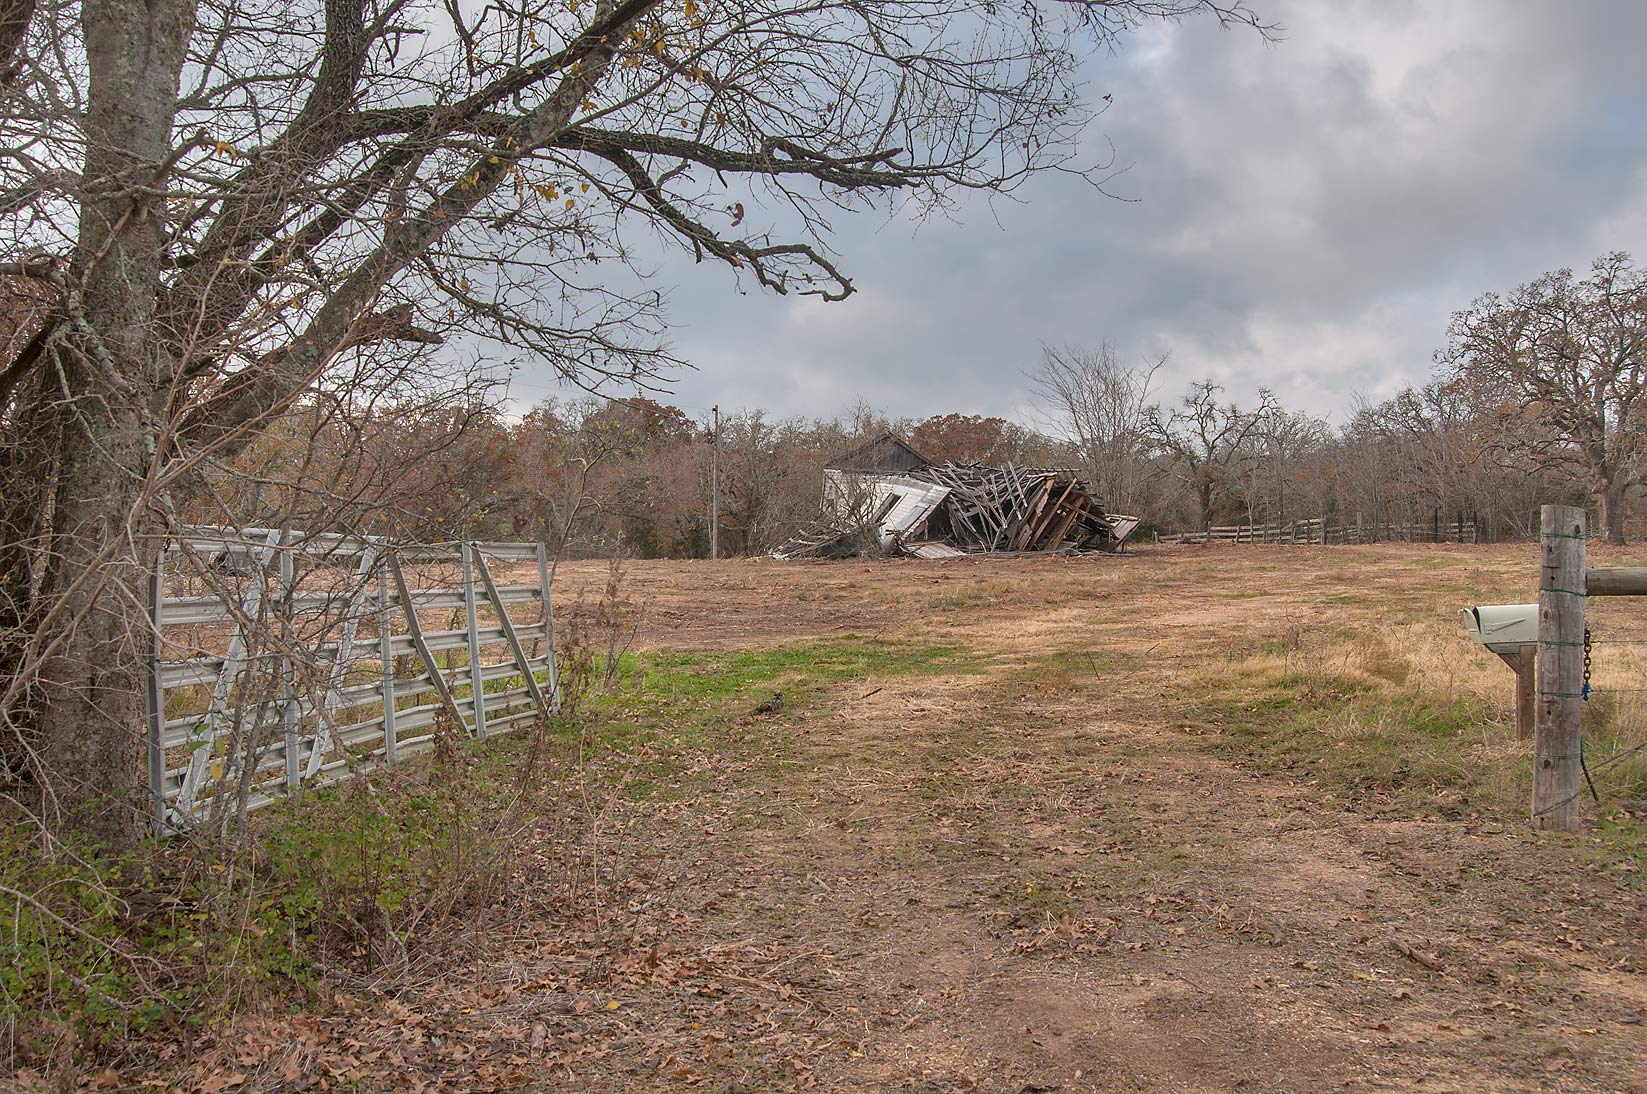 College Station-Bryant Station, Texas  - A ranch at Rd. 237 near Cameron. Texas